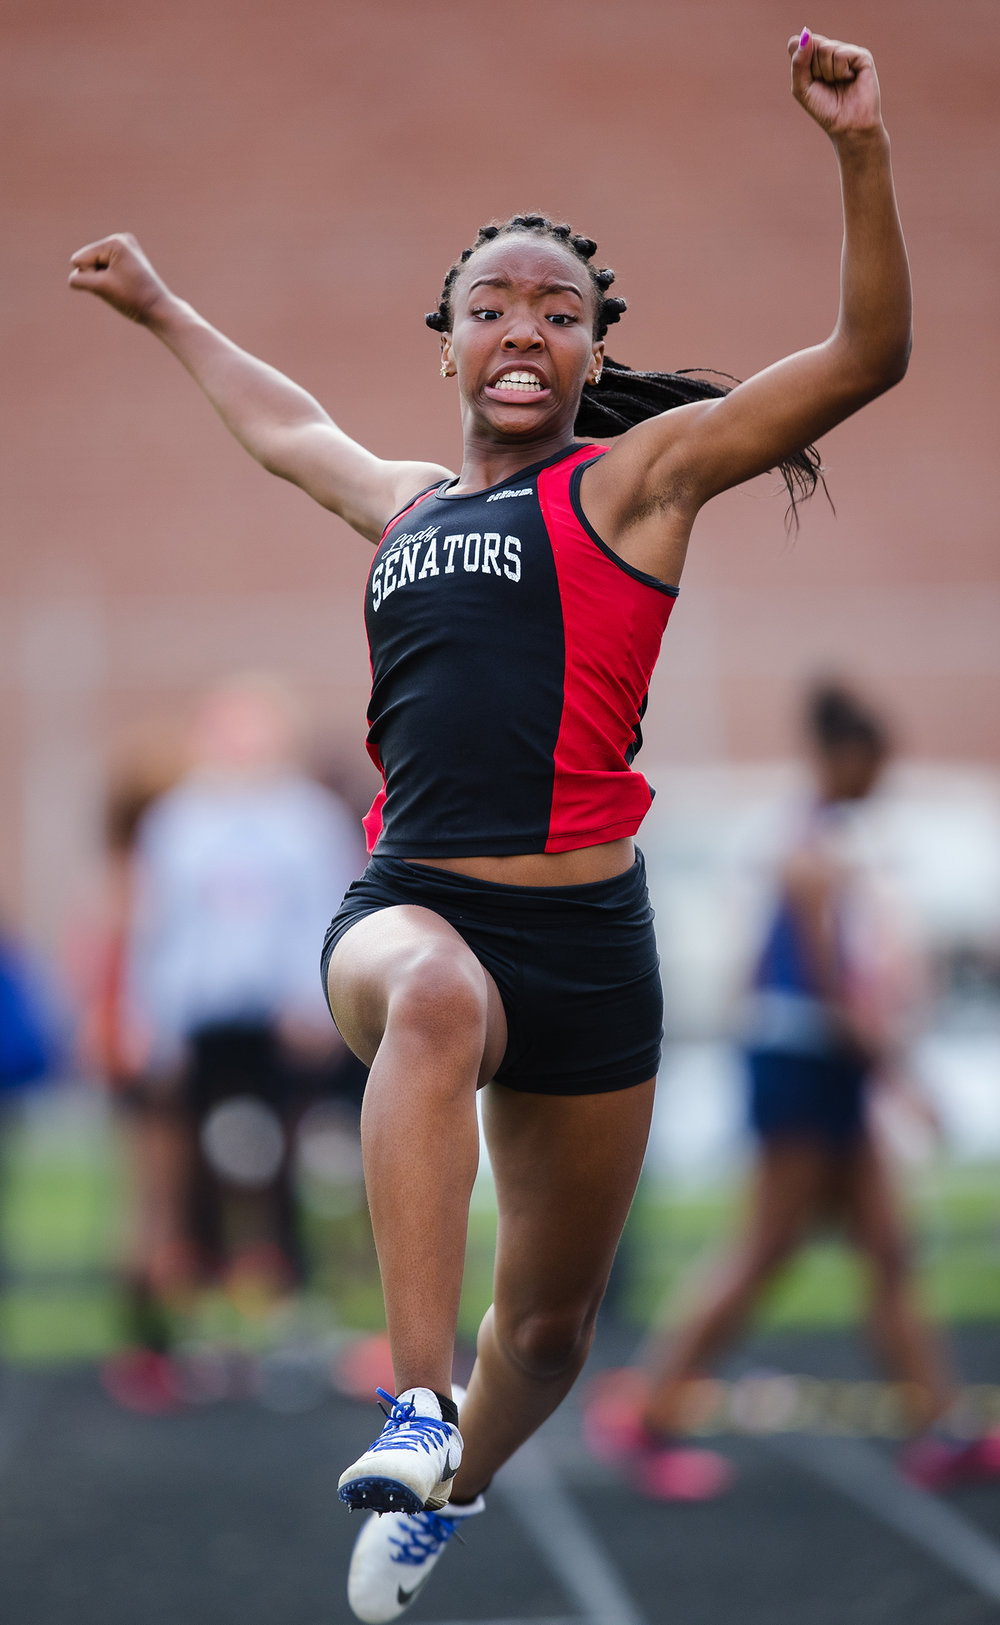 Springfield's Ashanti Hanson competes in the triple jump during the Girls City Meet at Memorial Stadium Tuesday, April 25, 2017.  [Ted Schurter/The State Journal-Register]